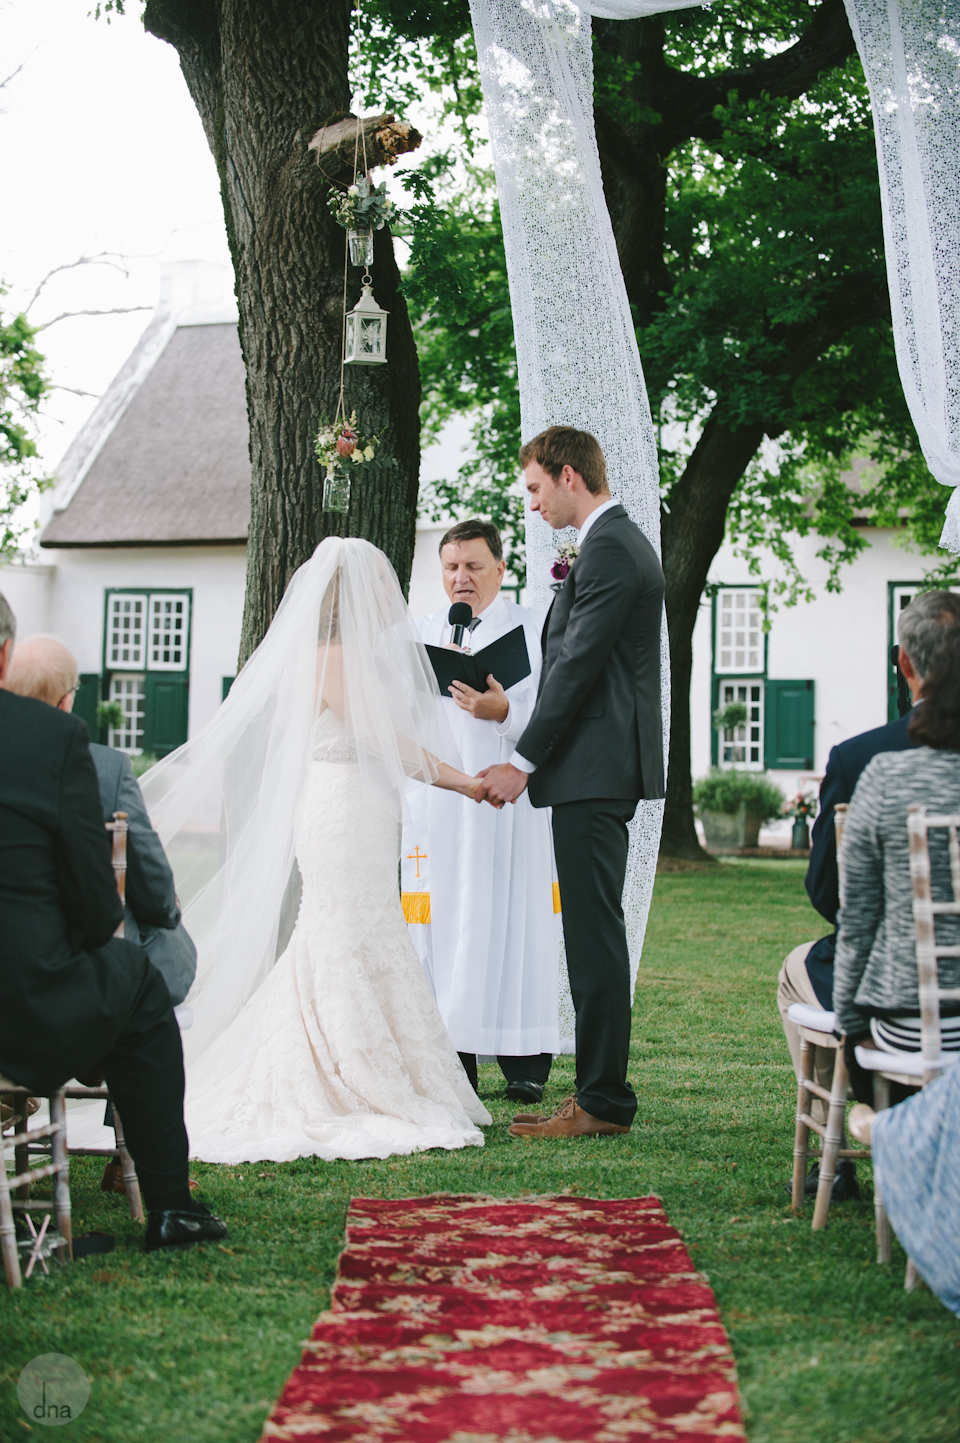 Amy and Marnus wedding Hawksmore House Stellenbosch South Africa shot by dna photographers_-471.jpg